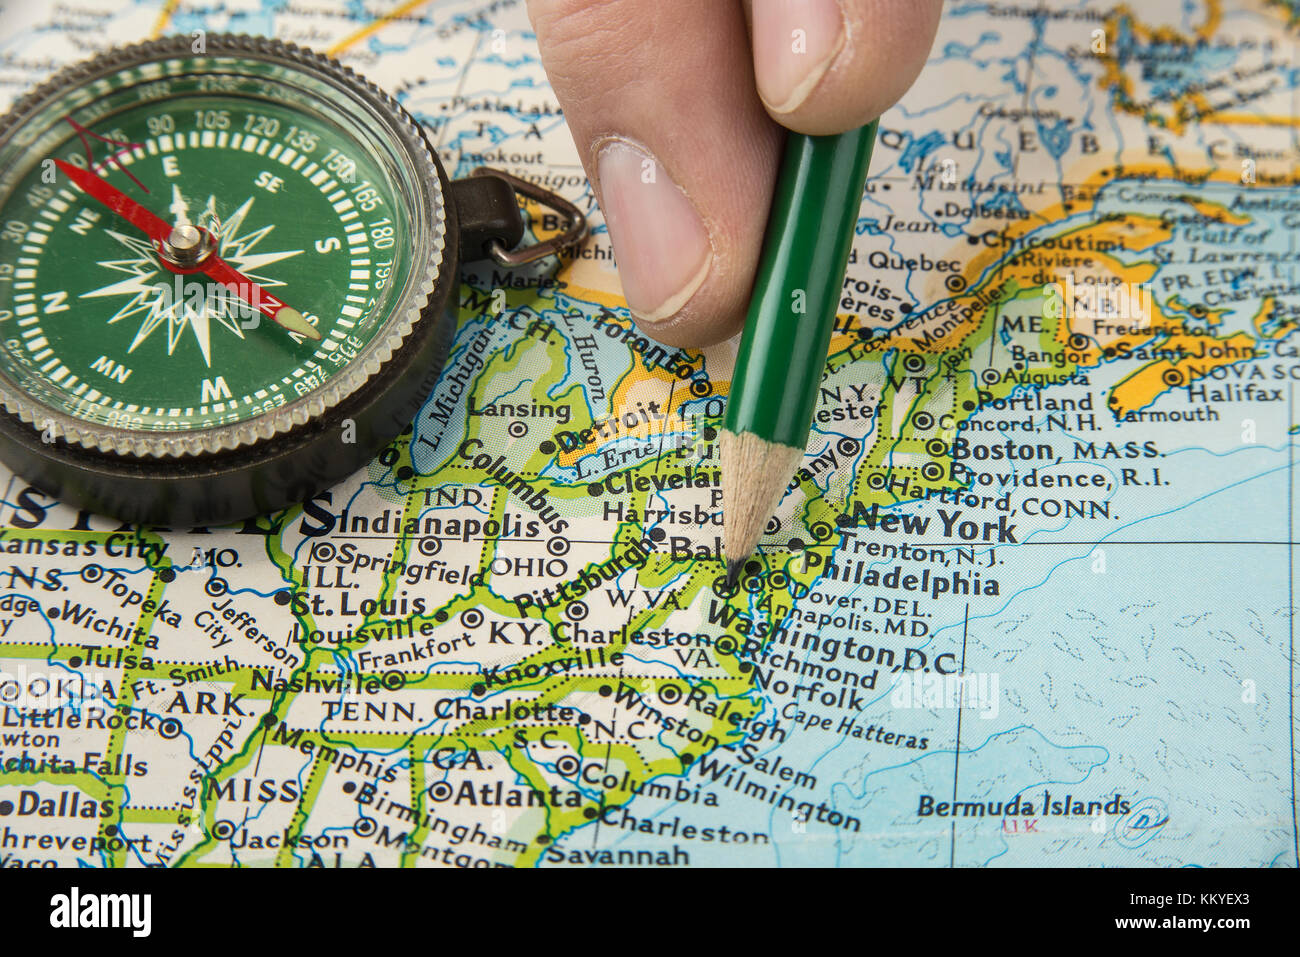 Physical Map New York Stock Photos & Physical Map New York Stock ...